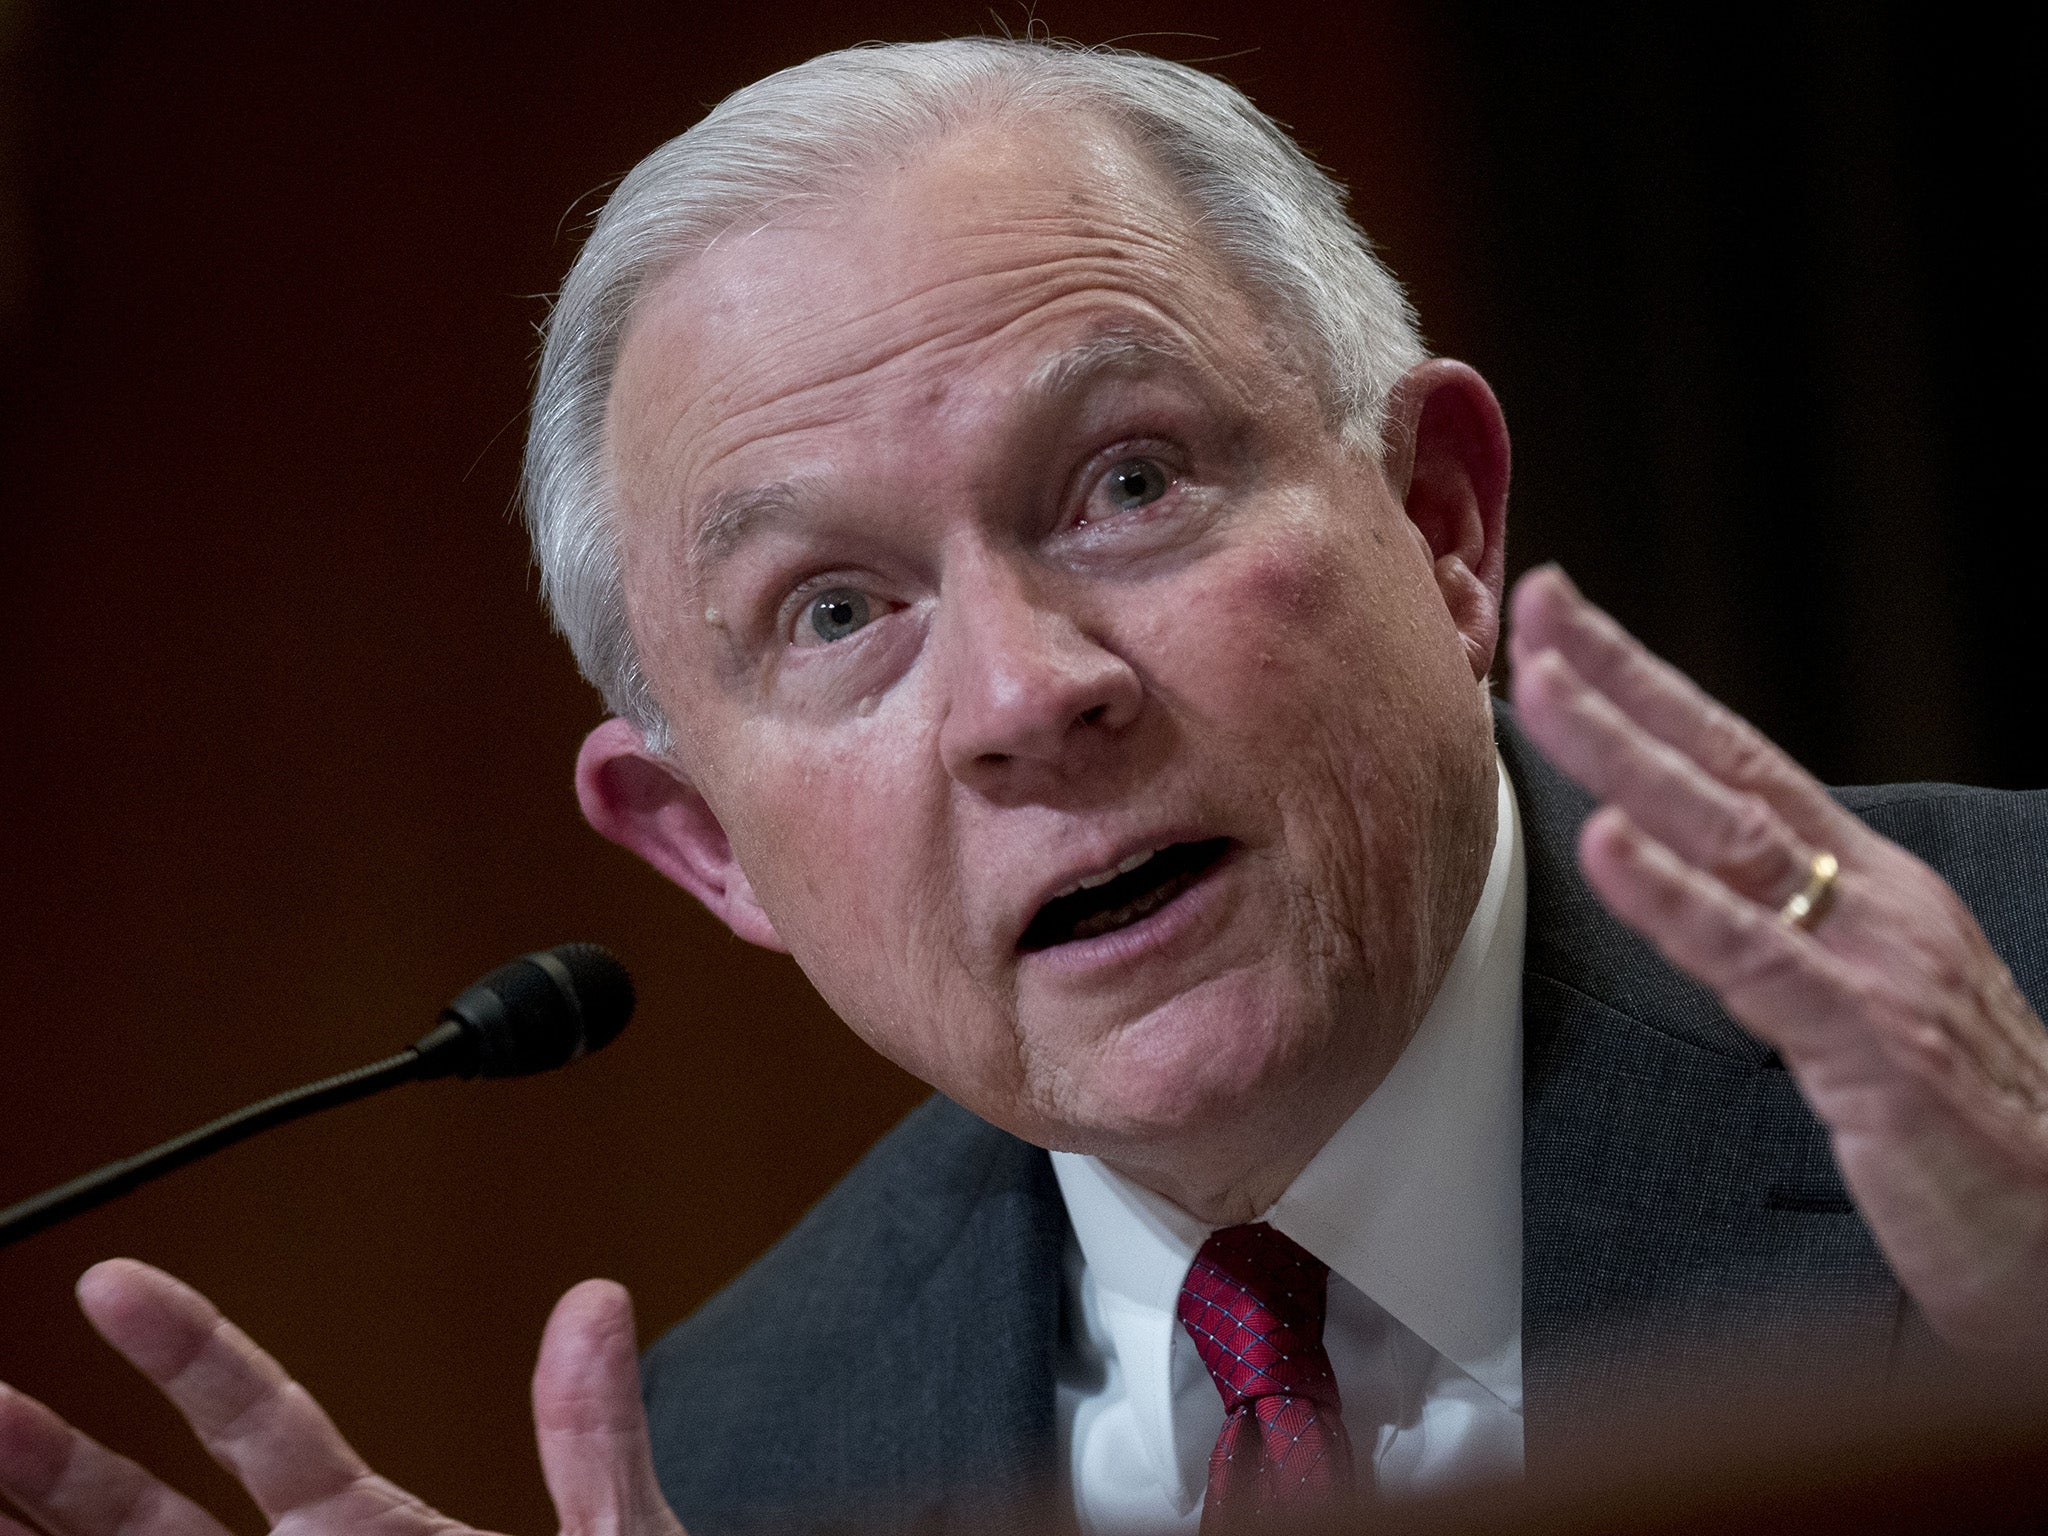 Federal judge threatens to hold Sessions in contempt over deportation